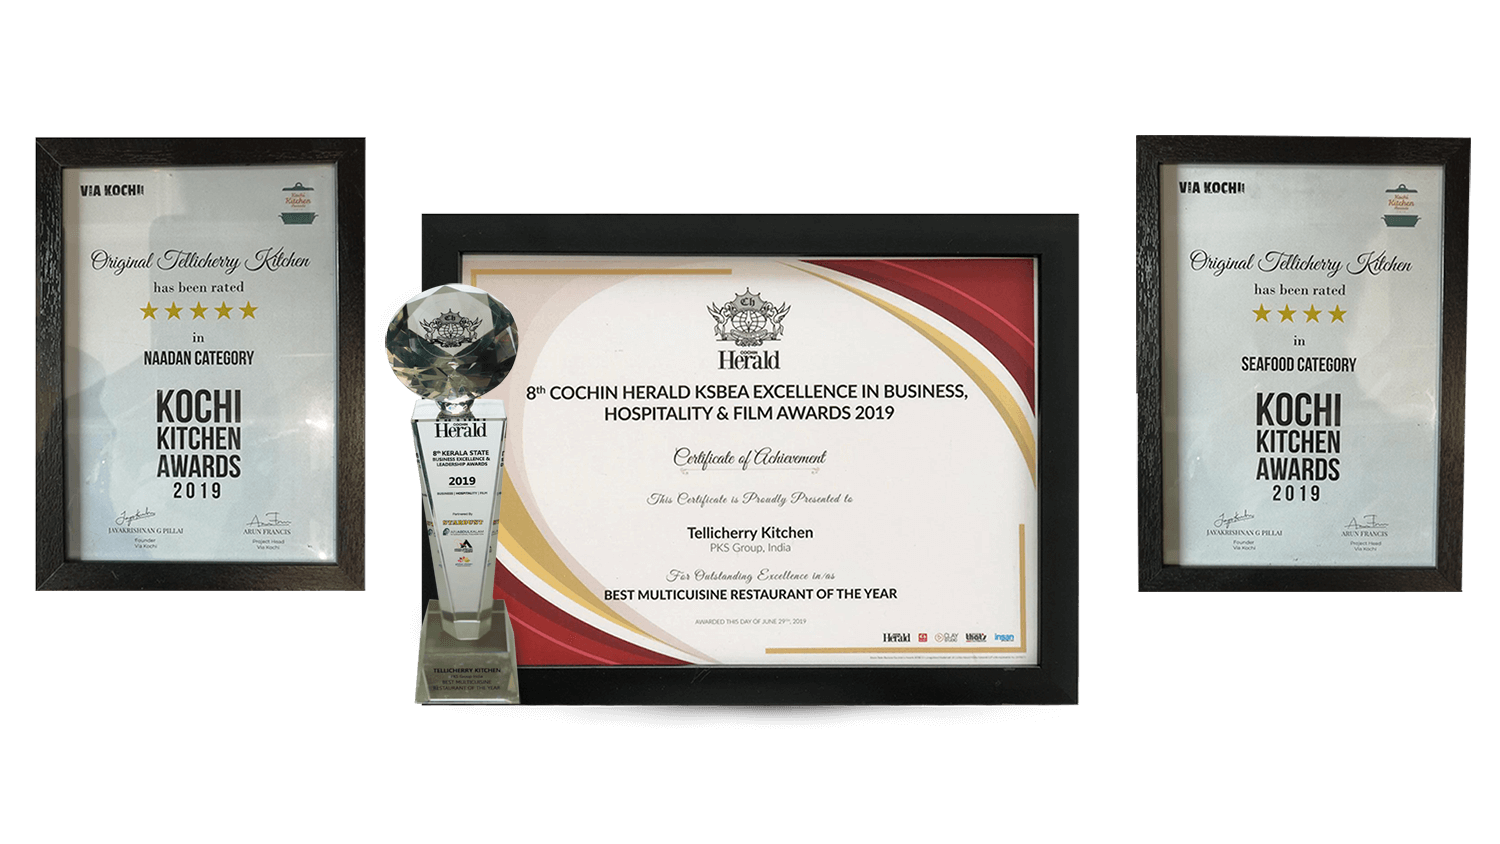 Best Naadan Restaurant-Kochi Kitchen Awards 2019:Best Multicuisine Restaurant-8th Cochin Herald KSBEA Excellence in Business,Hospitality&Film Awards 2019:Best Seafood Restaurant-Kochi Kitchen Awards 2019